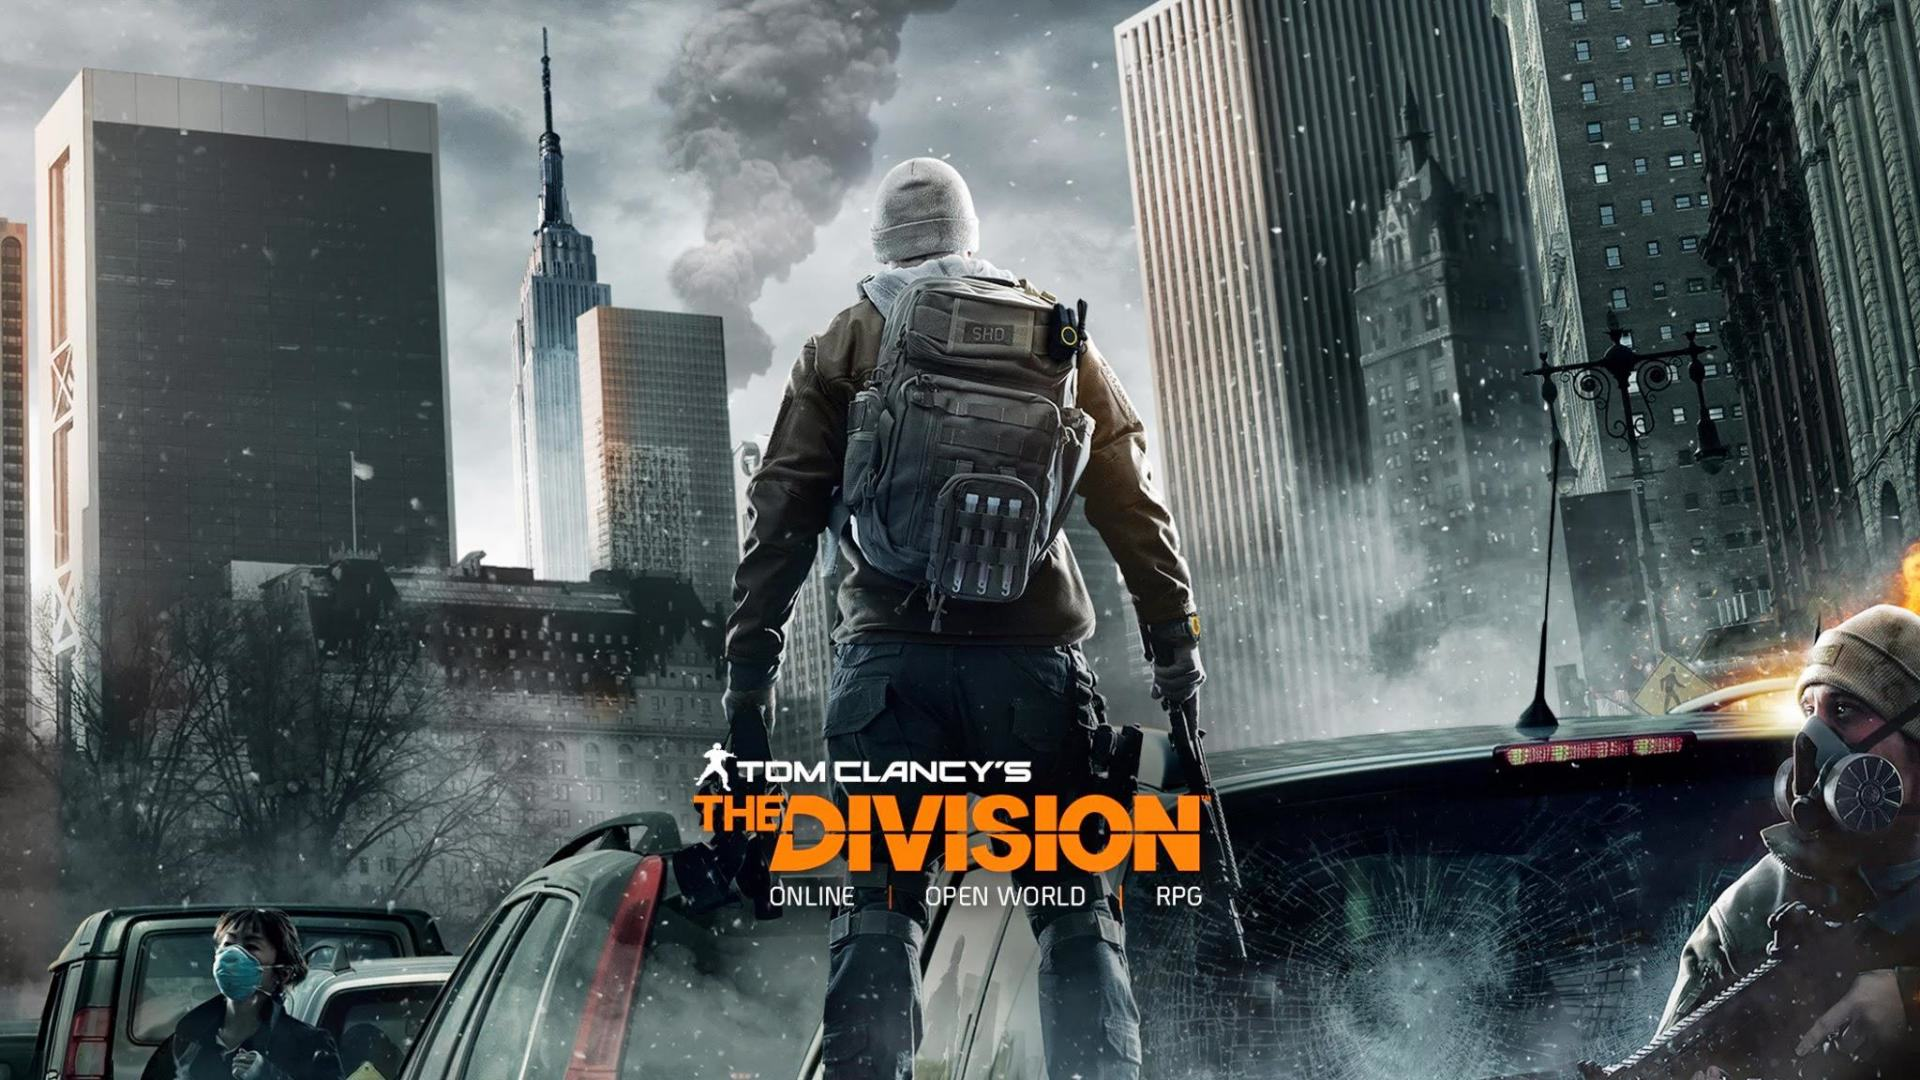 %name We Had An Exclusive Look At The Division Ahead Of Release Day